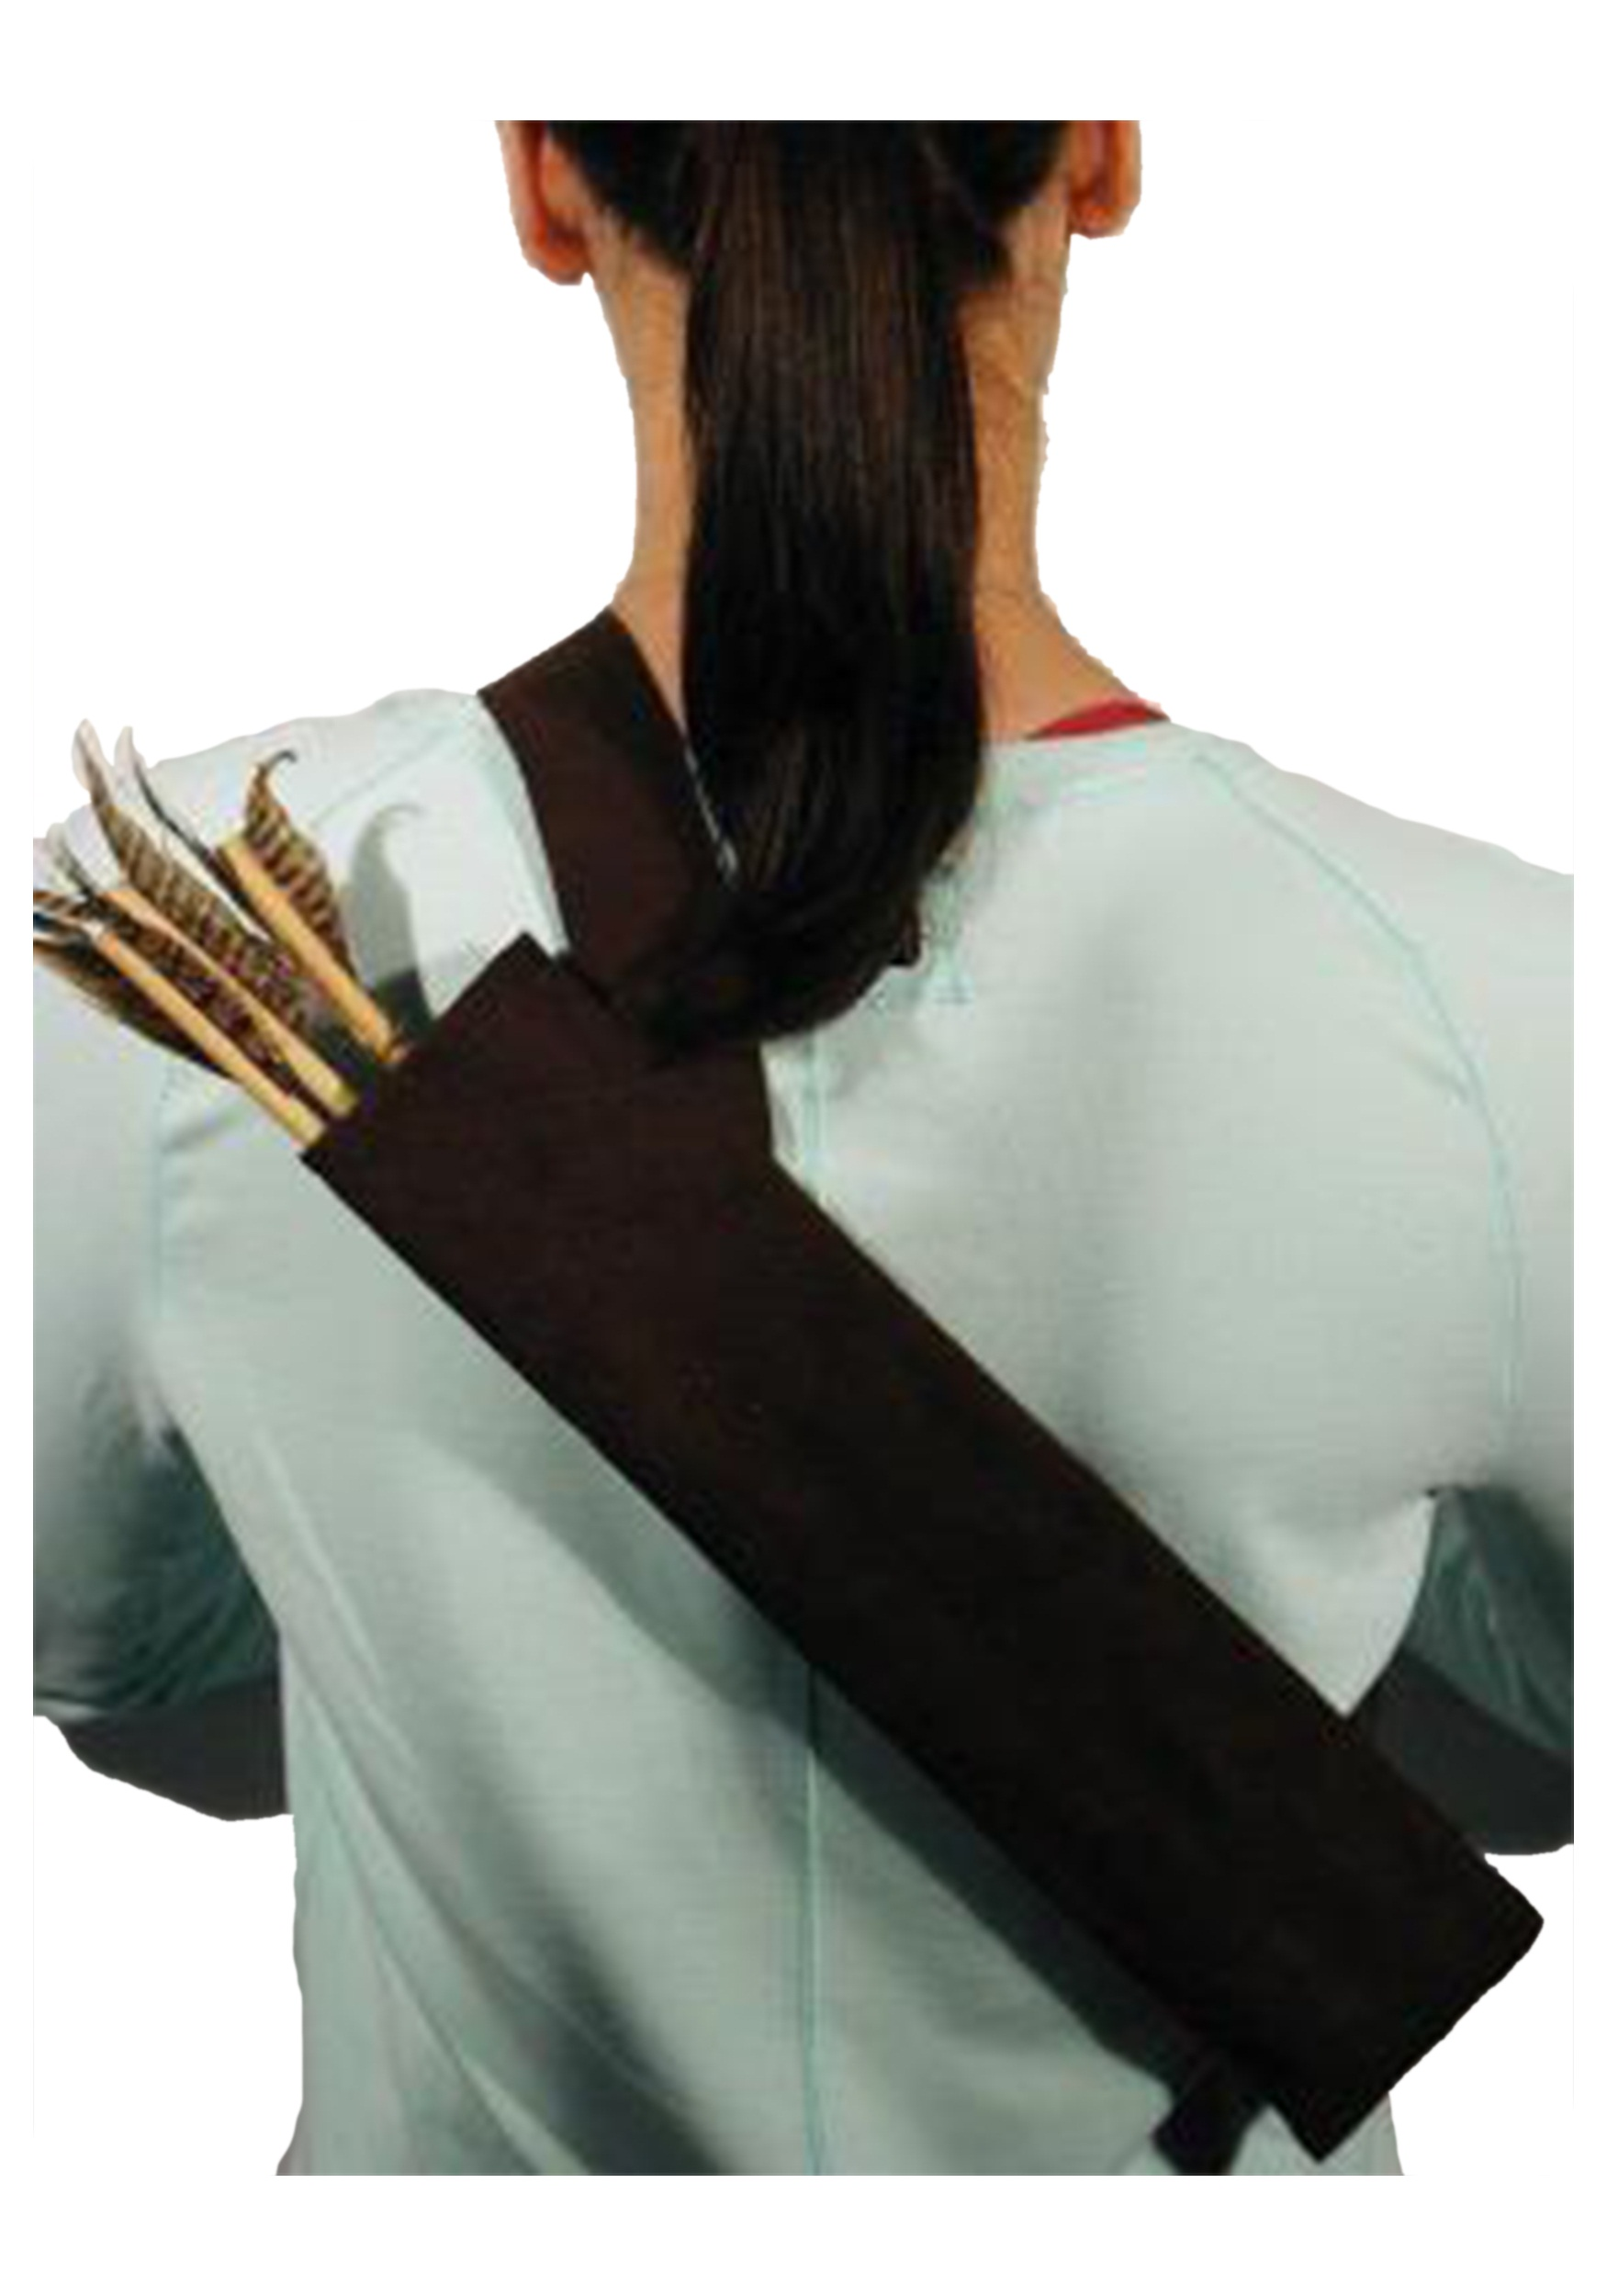 Belted Quiver with Arrows